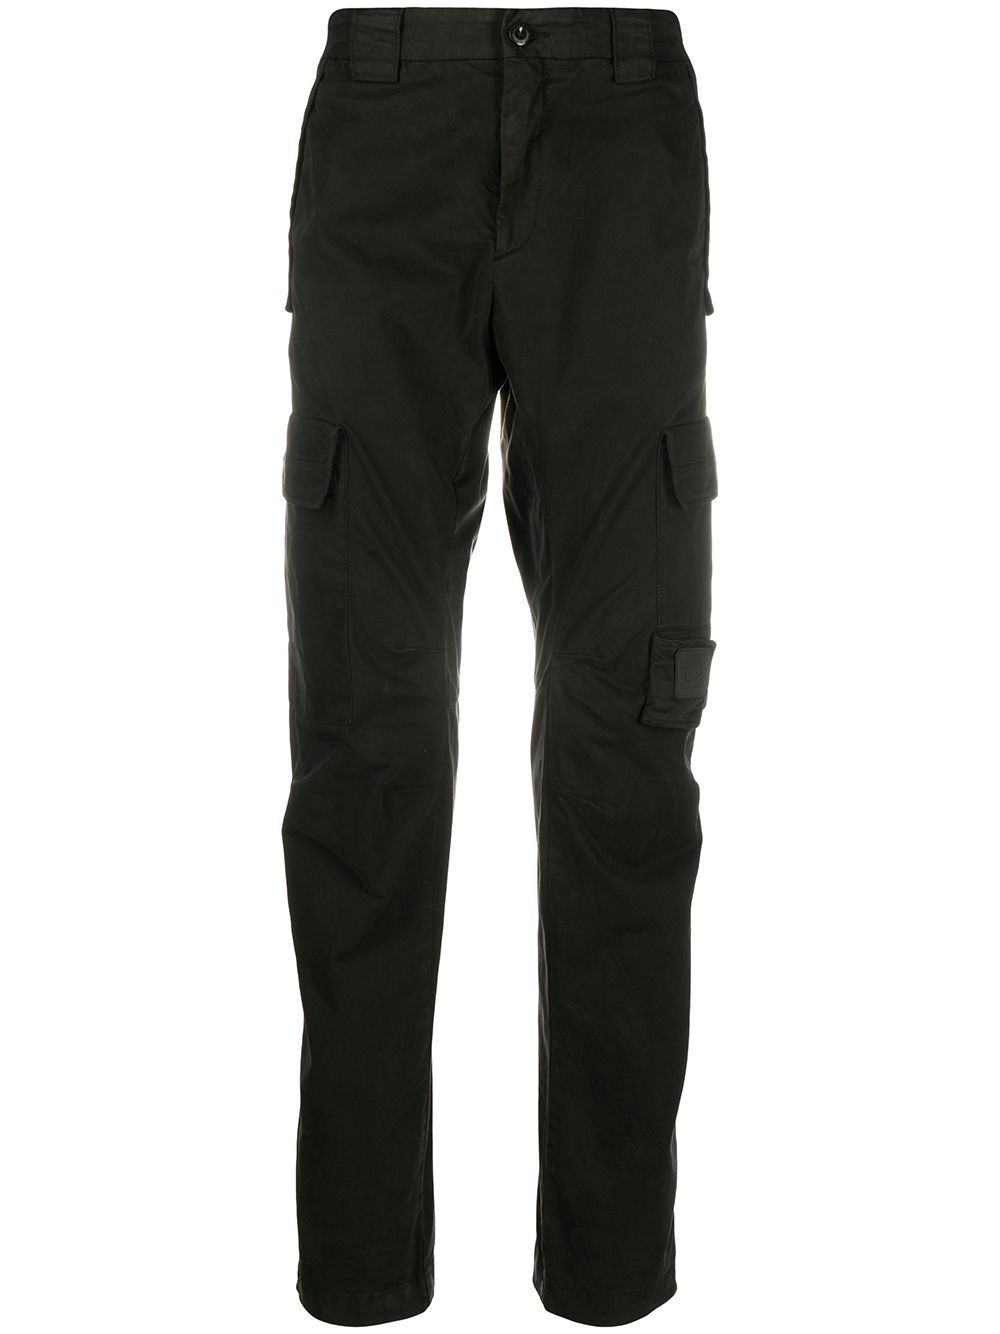 C.P COMPANY Lens Cargo Trousers Black - Maison De Fashion